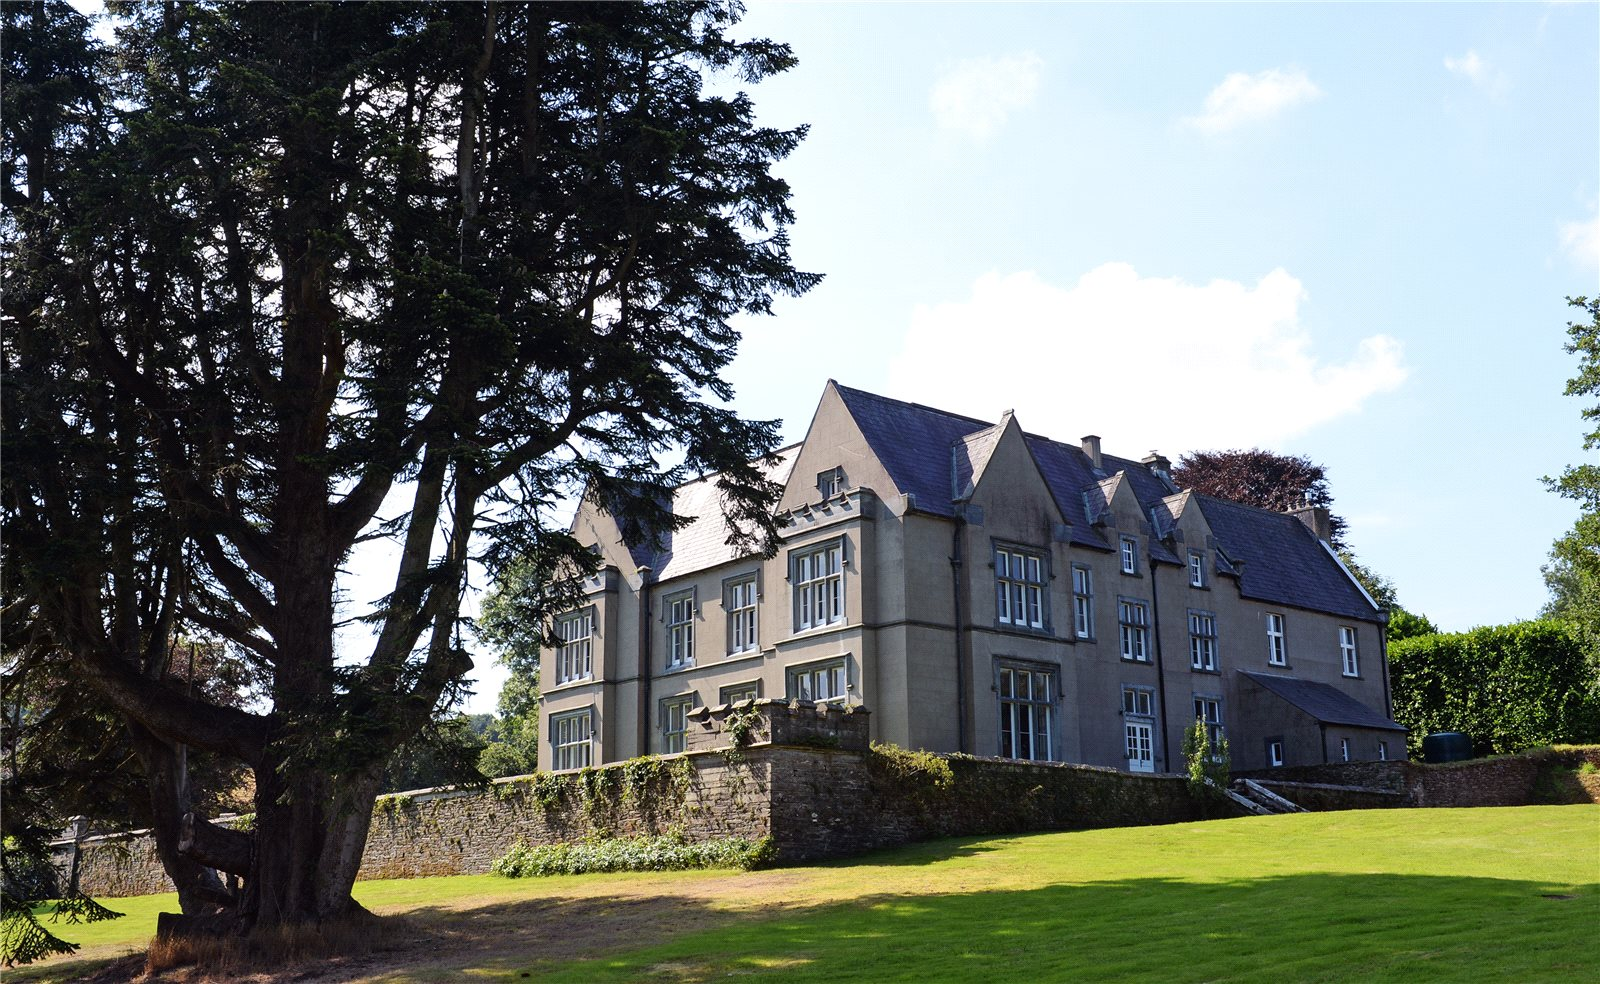 8 Bedrooms Detached House for sale in Clynfyw Mansion, Abercych, Boncath, Pembrokeshire